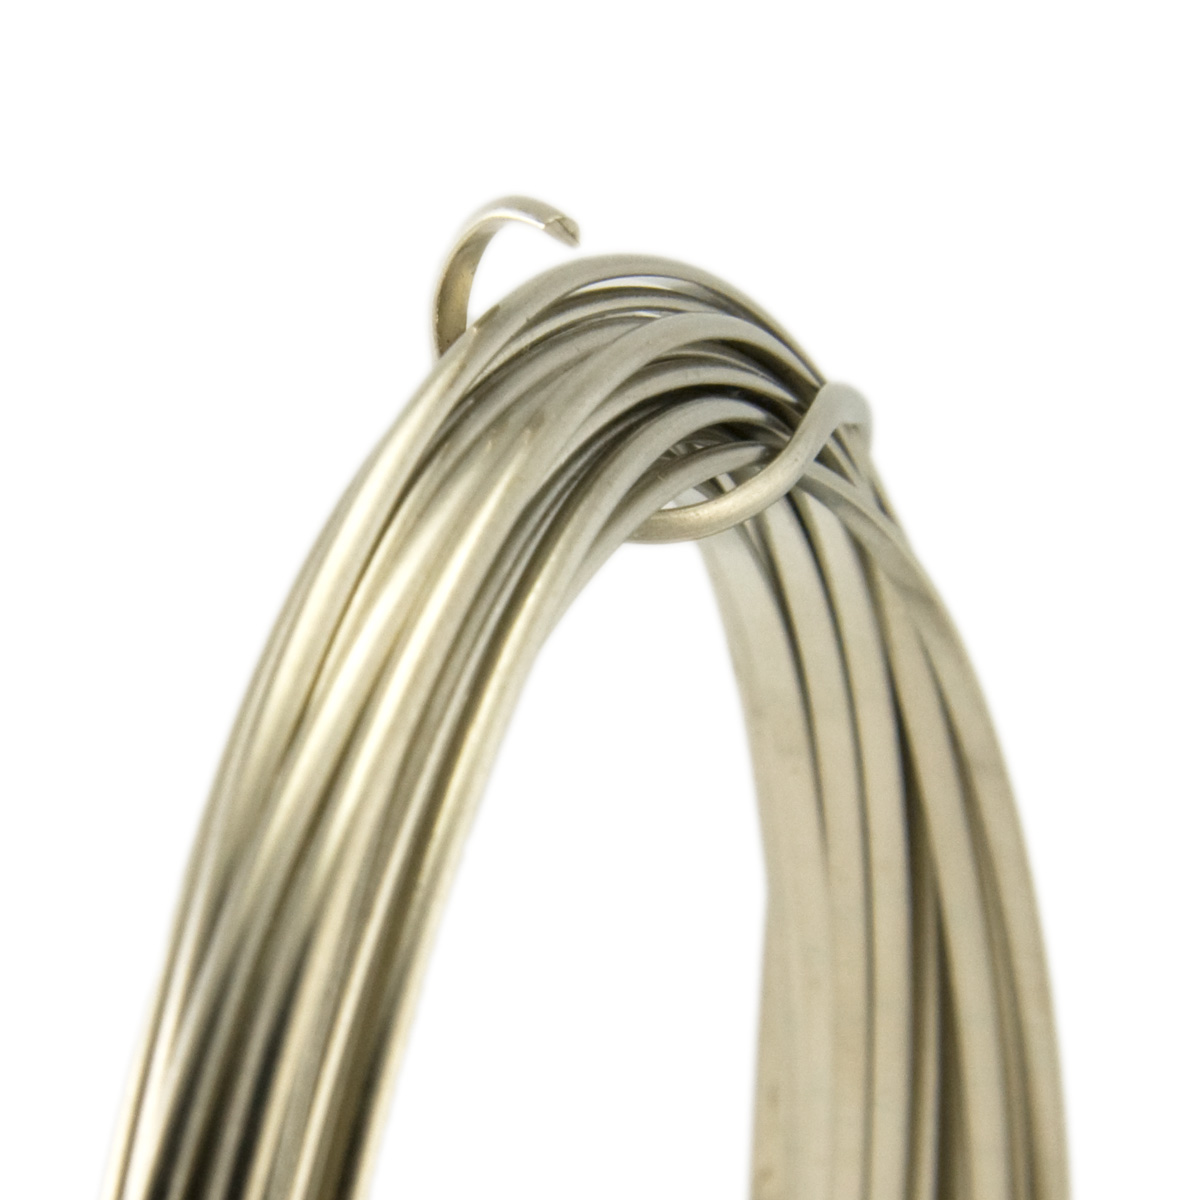 20 Gauge Half Round Half Hard Nickel Silver Wire: Wire Jewelry ...